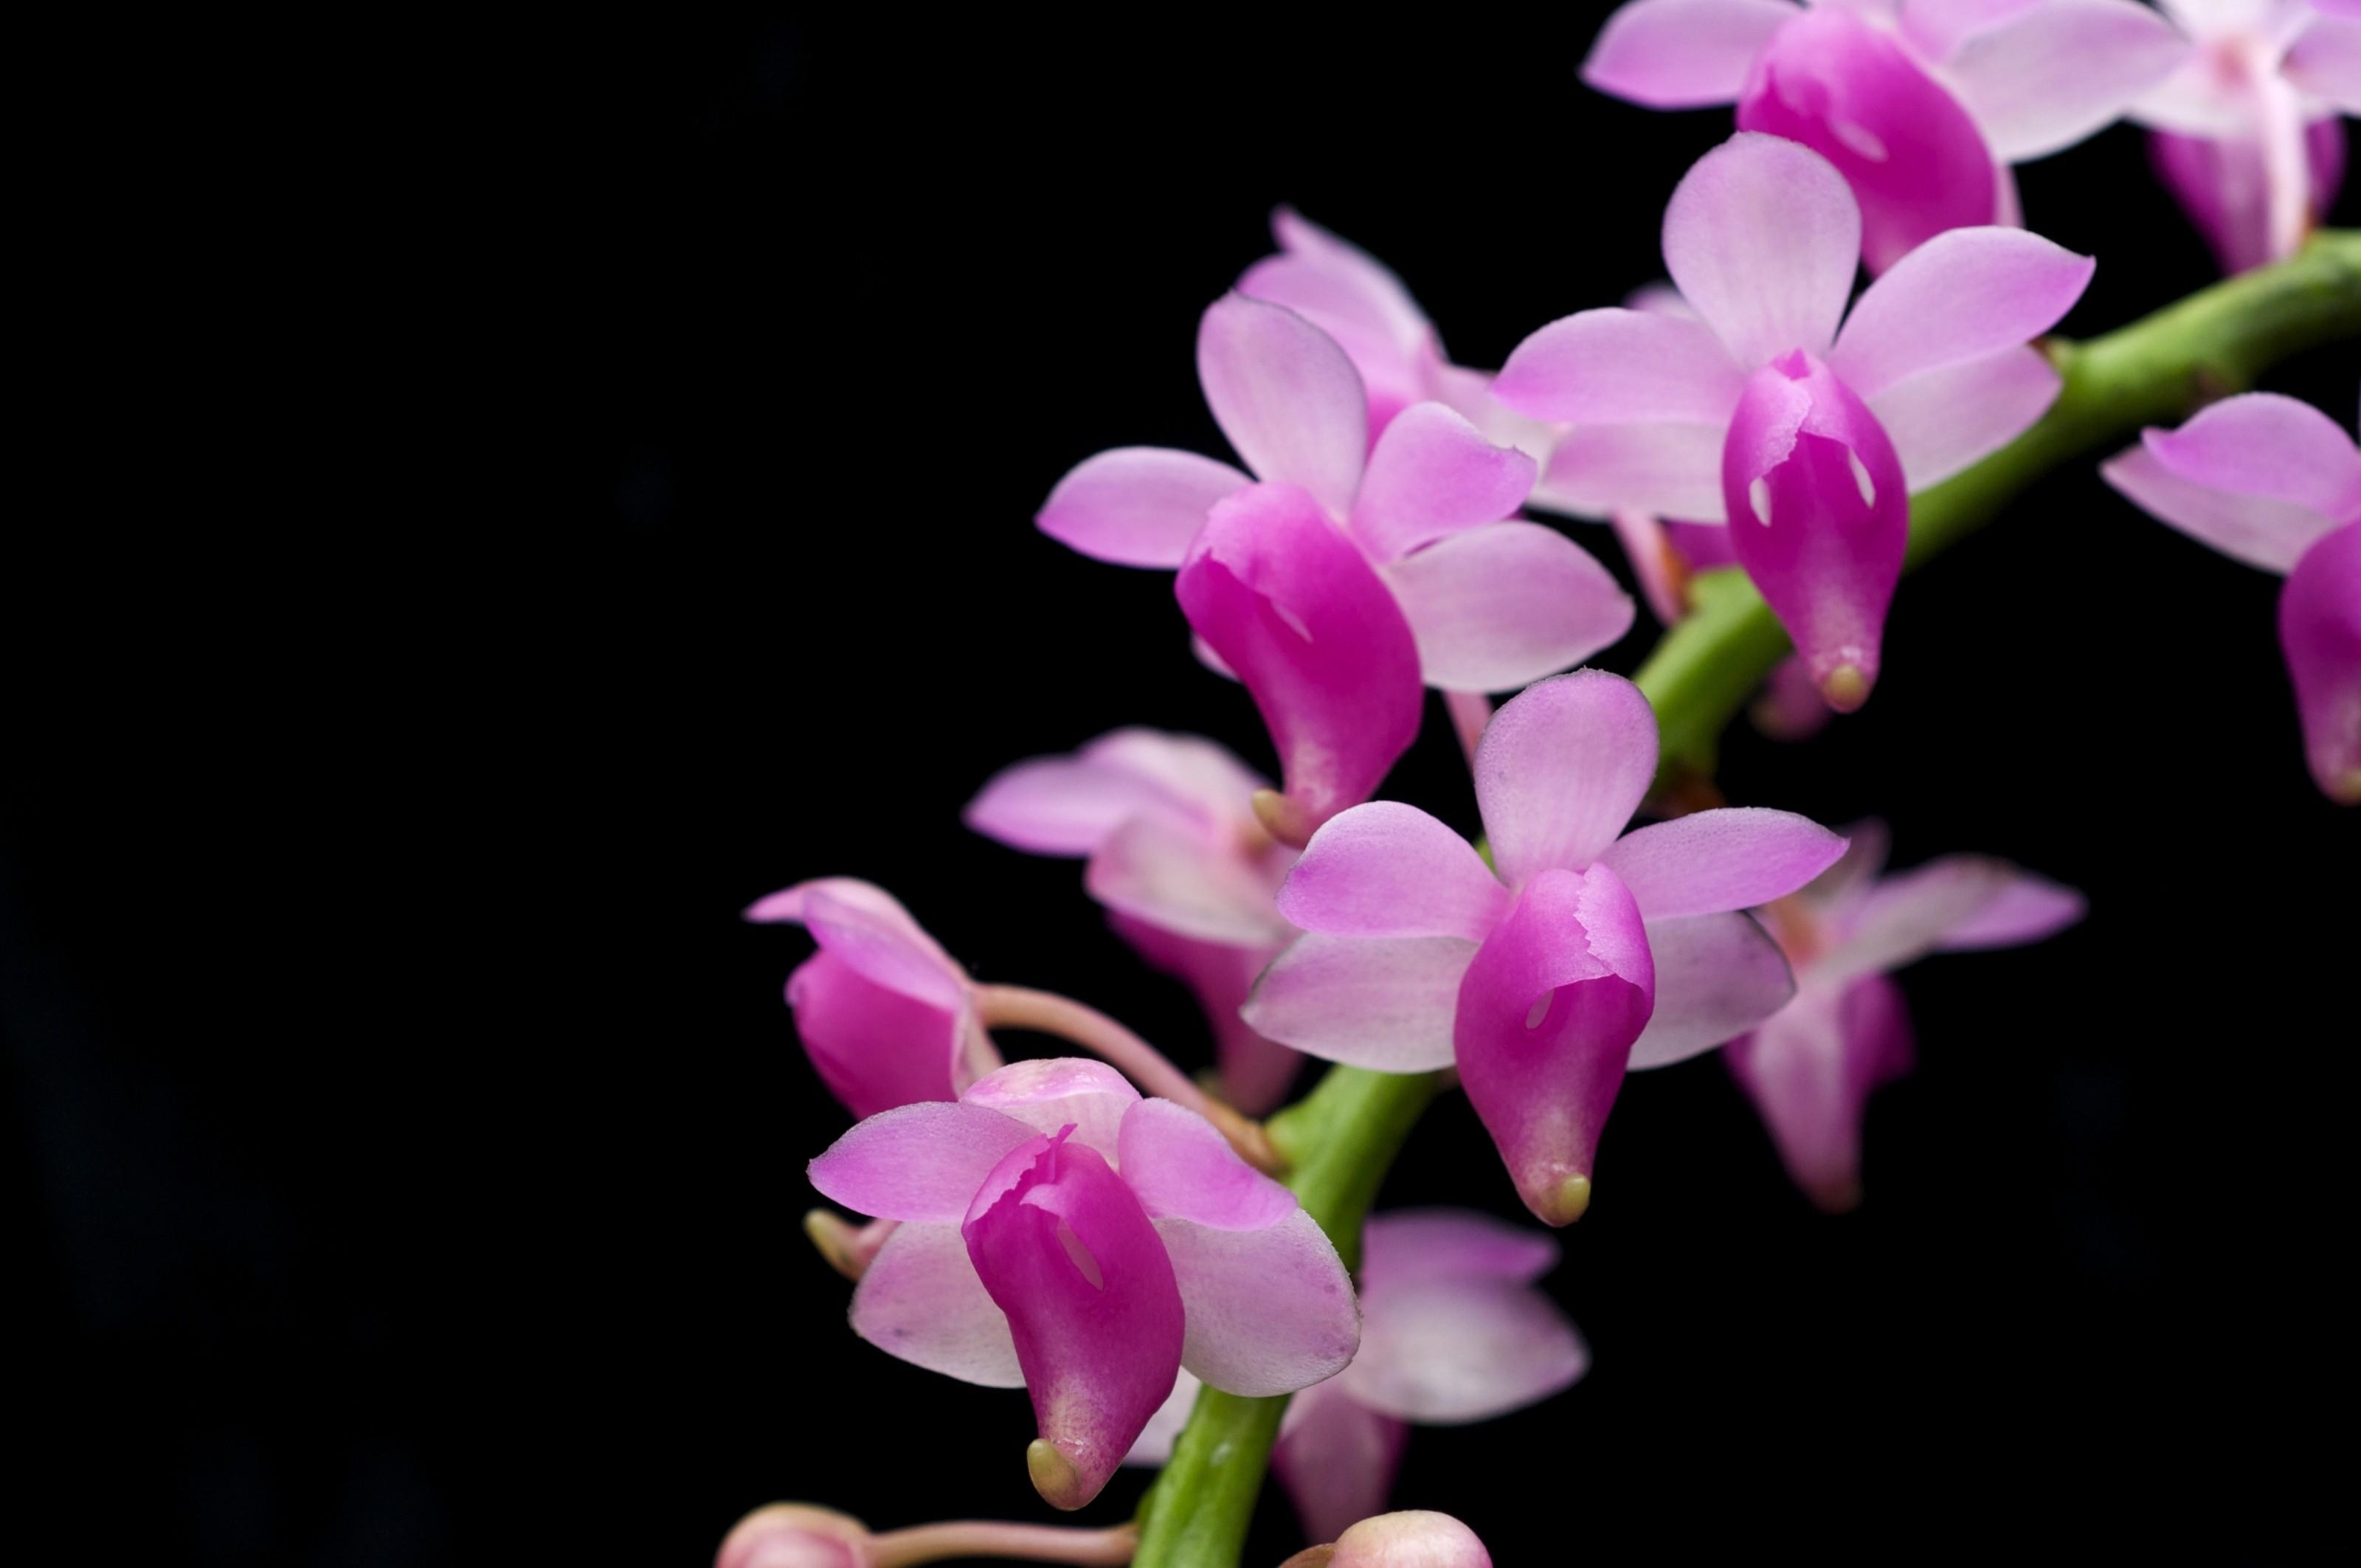 150696 download wallpaper Flowers, Orchid, Branch, Exotic, Exotics, Black Background screensavers and pictures for free